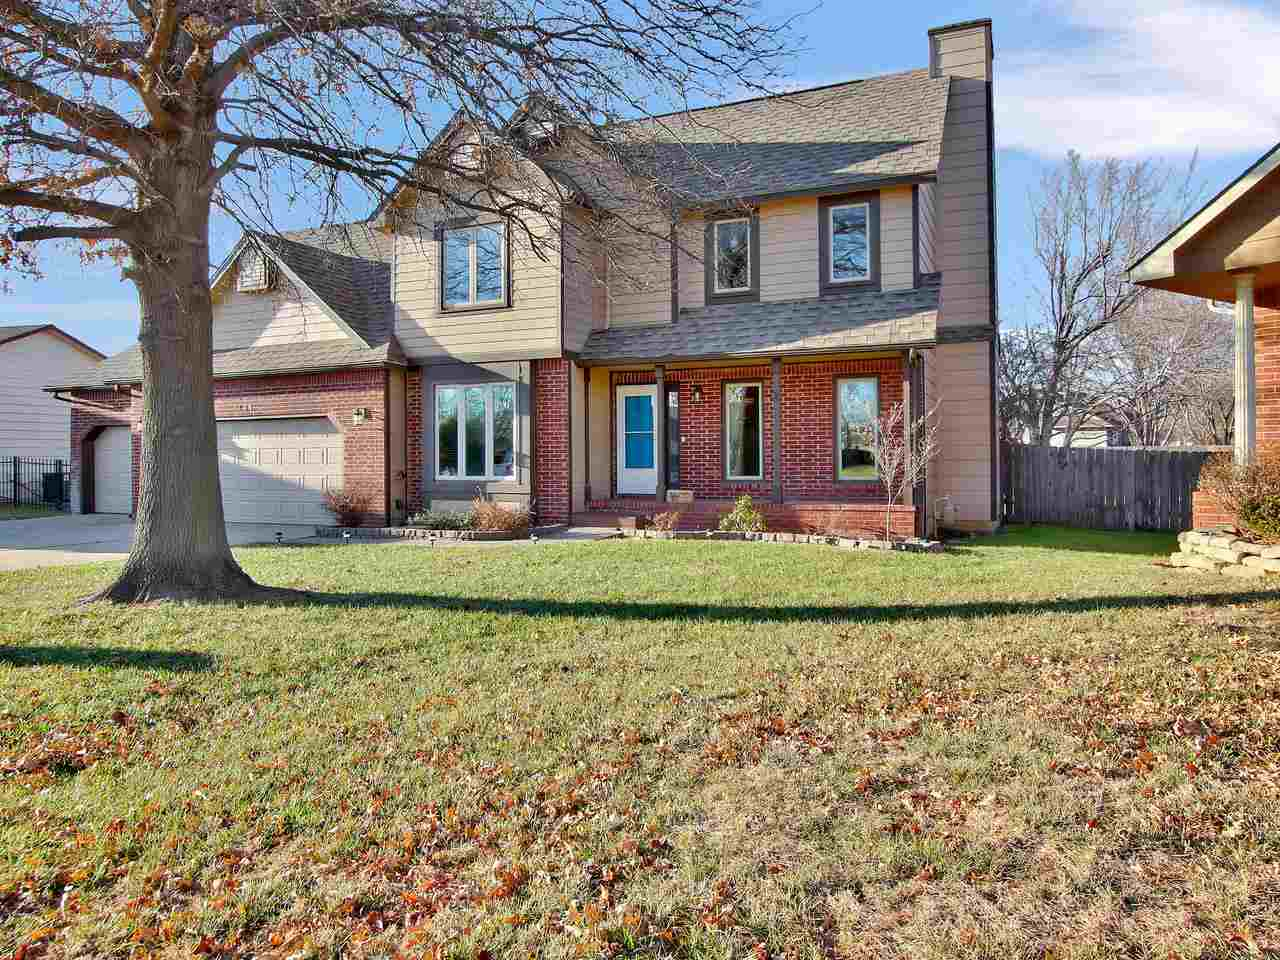 TRULY A ONE OF A KIND!  Perfect for entertaining, complete serenity and privacy! This home has an am